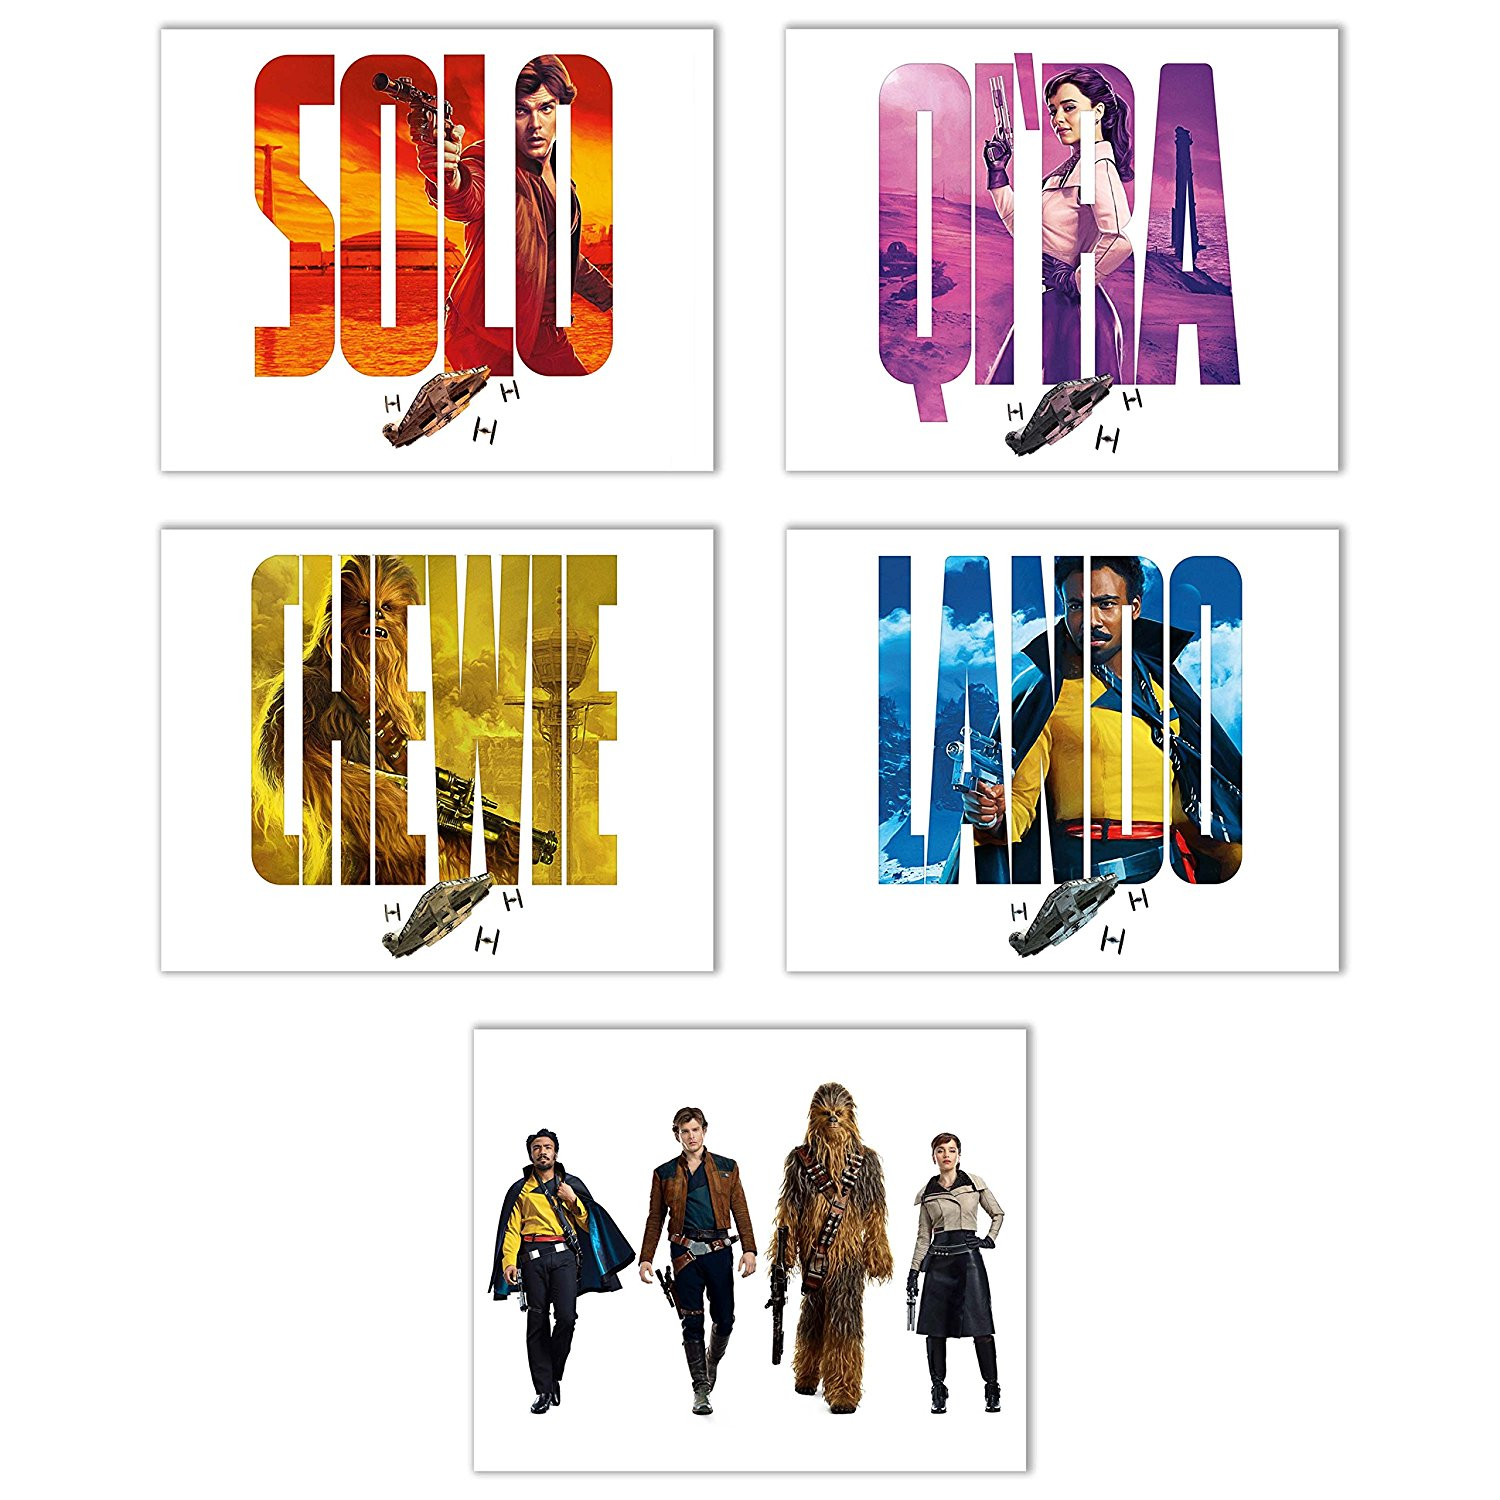 Solo: ASWS Character Poster Prints 5-Pack